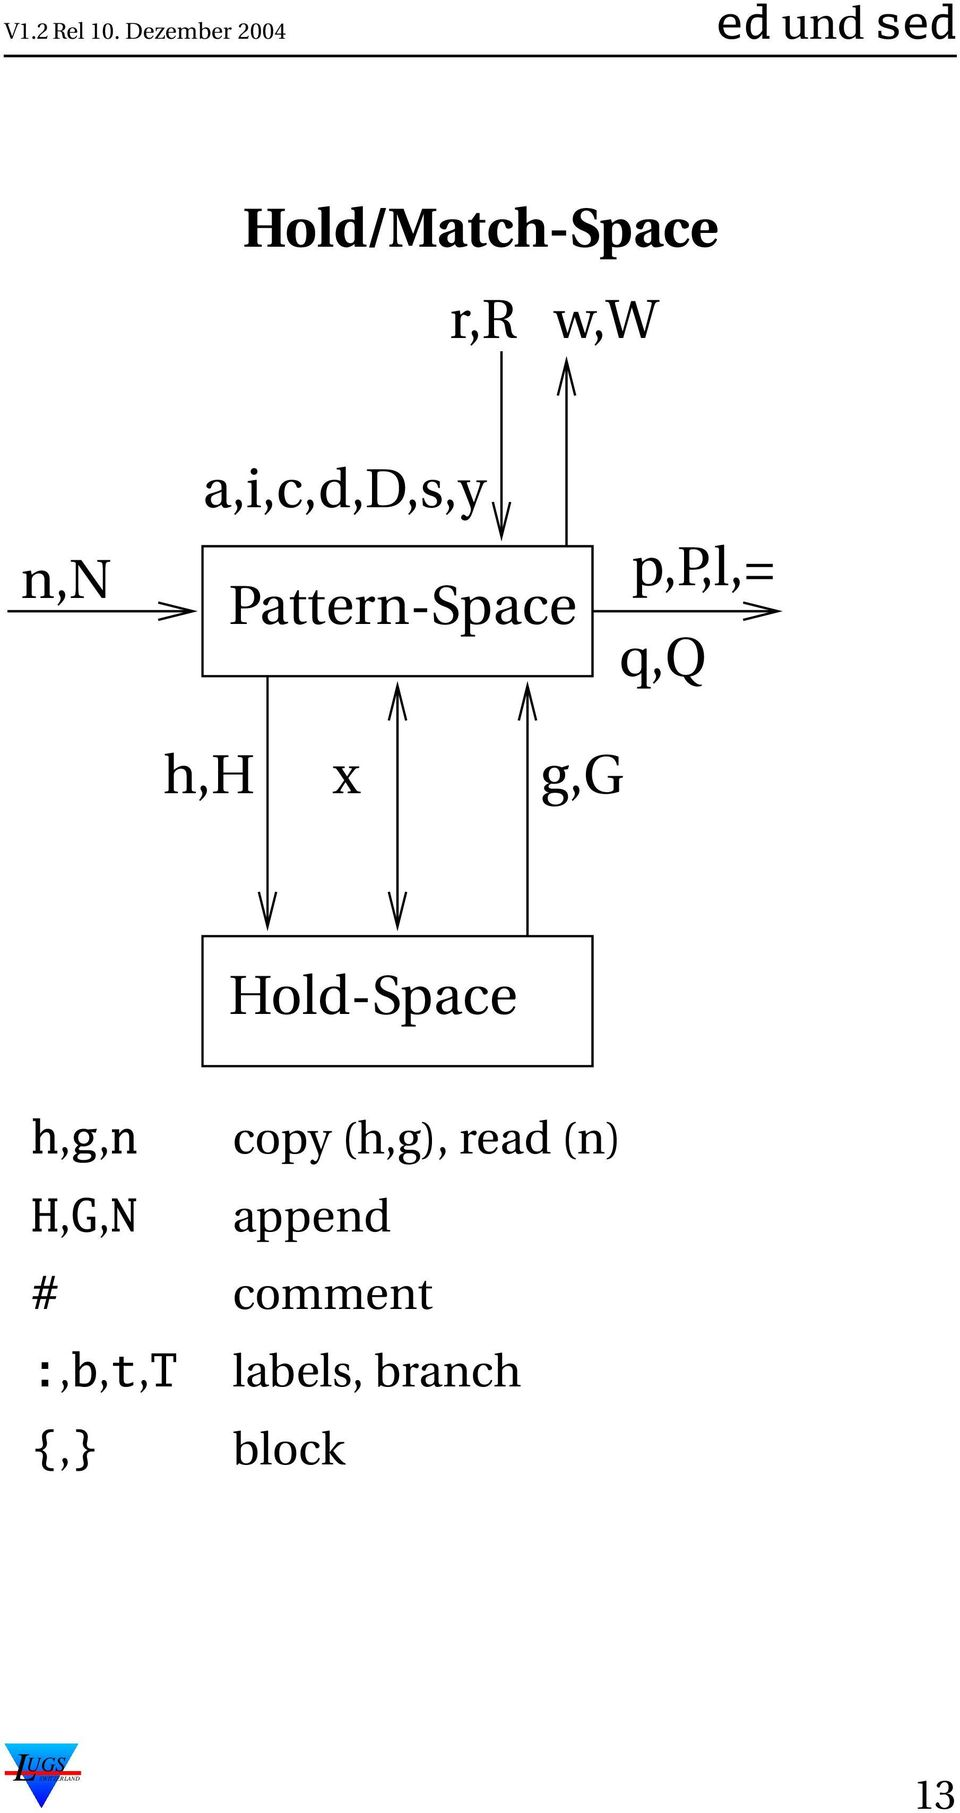 Hold-Space h,g,n copy (h,g), read (n) H,G,N